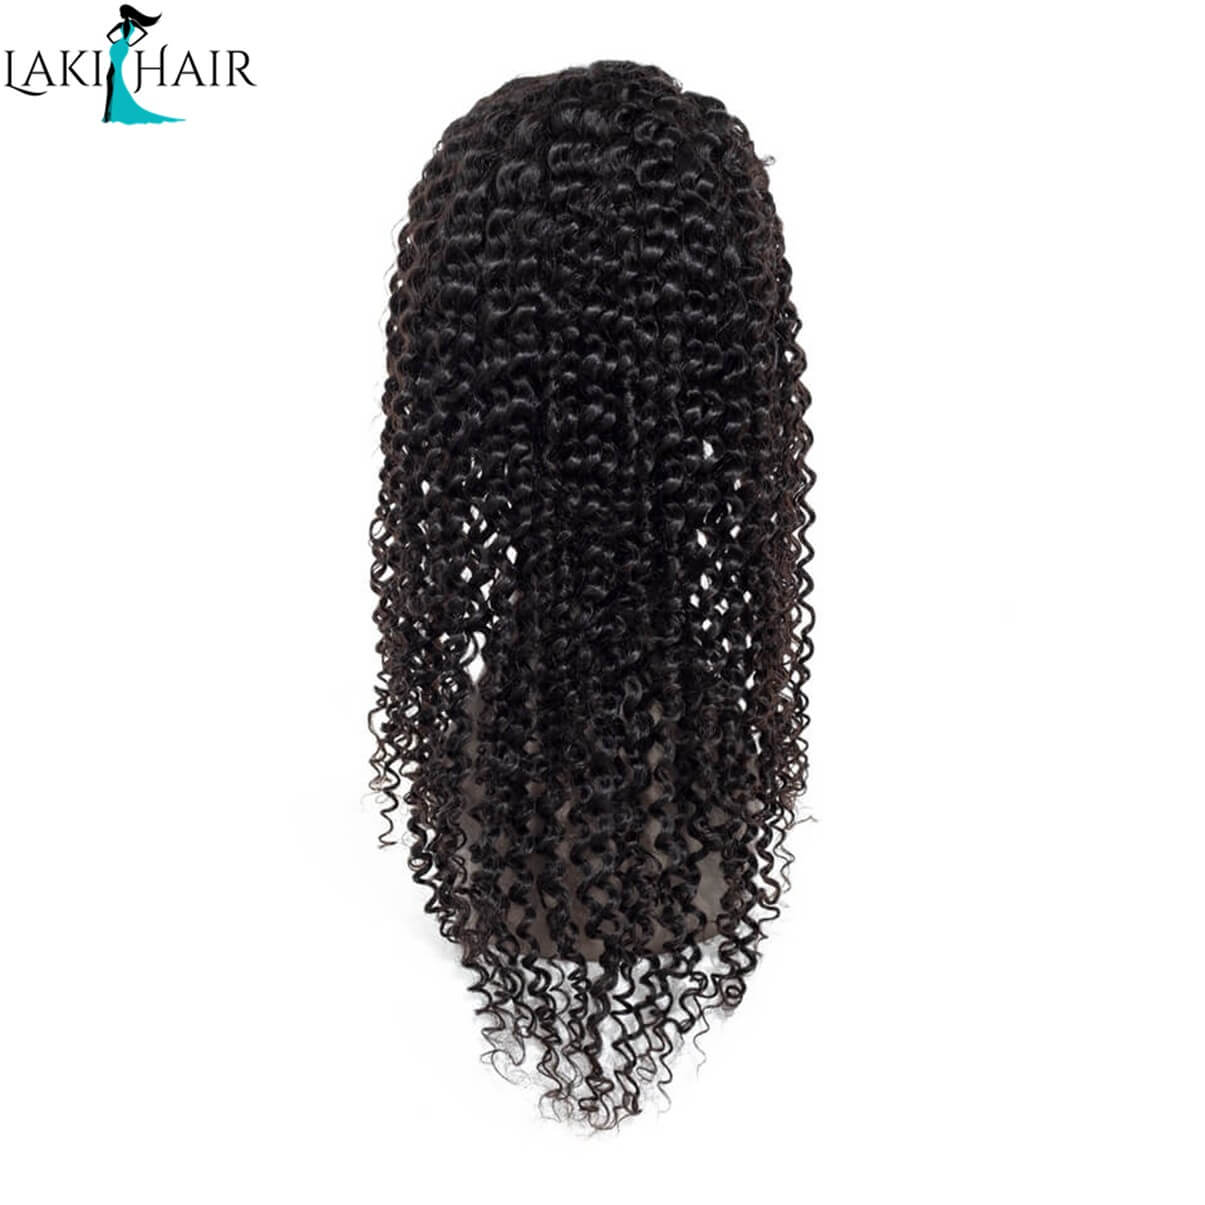 Lakihair Deep Curly Lace Front Wigs Real Virgin Human Hair Lace Wigs With Baby Hair 180% Density